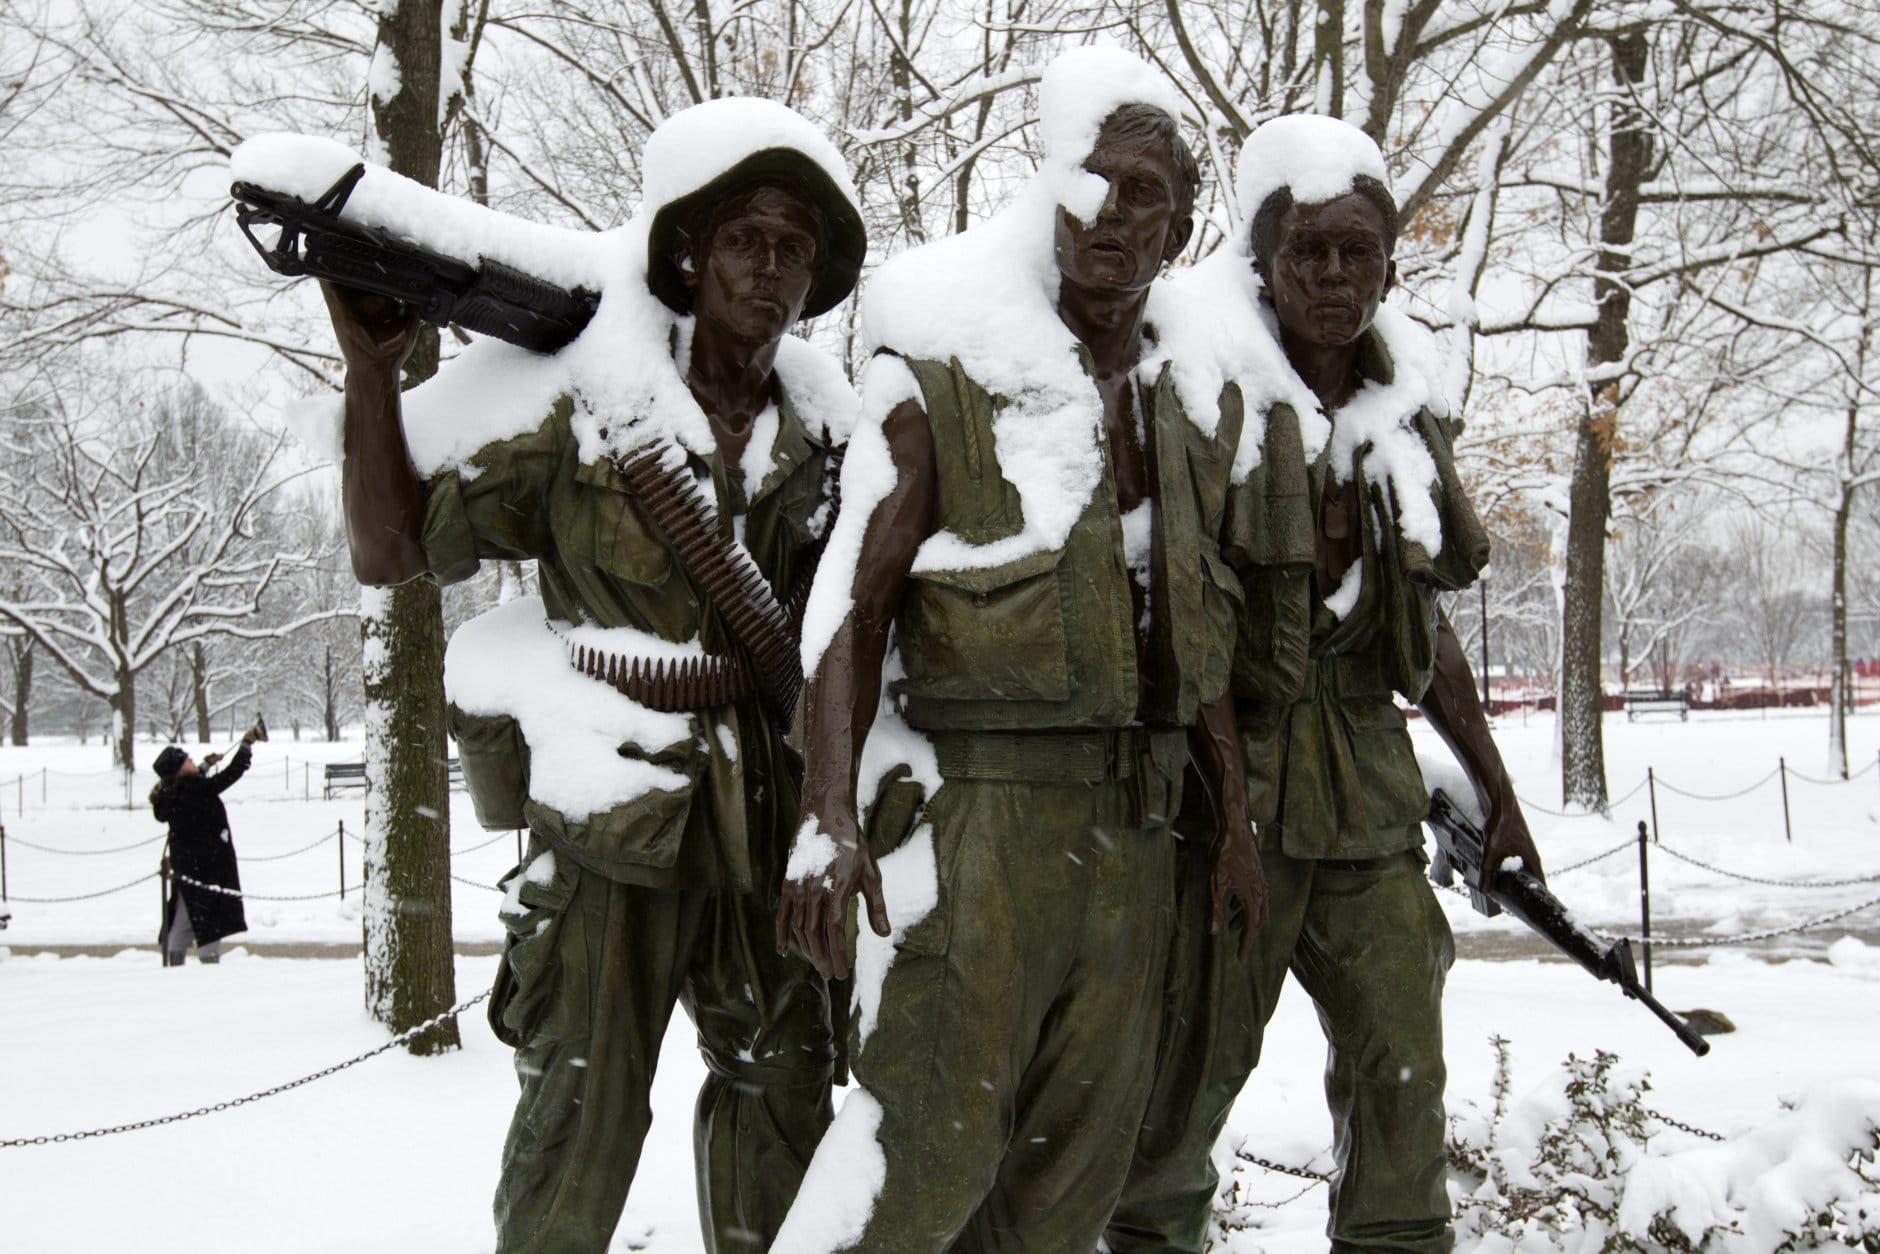 The Three Soldiers sculpture are covered in snow at Vietnam Veterans Memorial, during a snowstorm, as a partial government shutdown stretches into its third week at Capitol Hill in Washington Sunday, Jan. 13, 2019. With the standoff over paying for his long-promised border wall dragging on, the president's Oval Office address and visit to the Texas border over the past week failed to break the logjam and left aides and allies fearful that the president has misjudged Democratic resolve and is running out of negotiating options. (AP Photo/Jose Luis Magana)